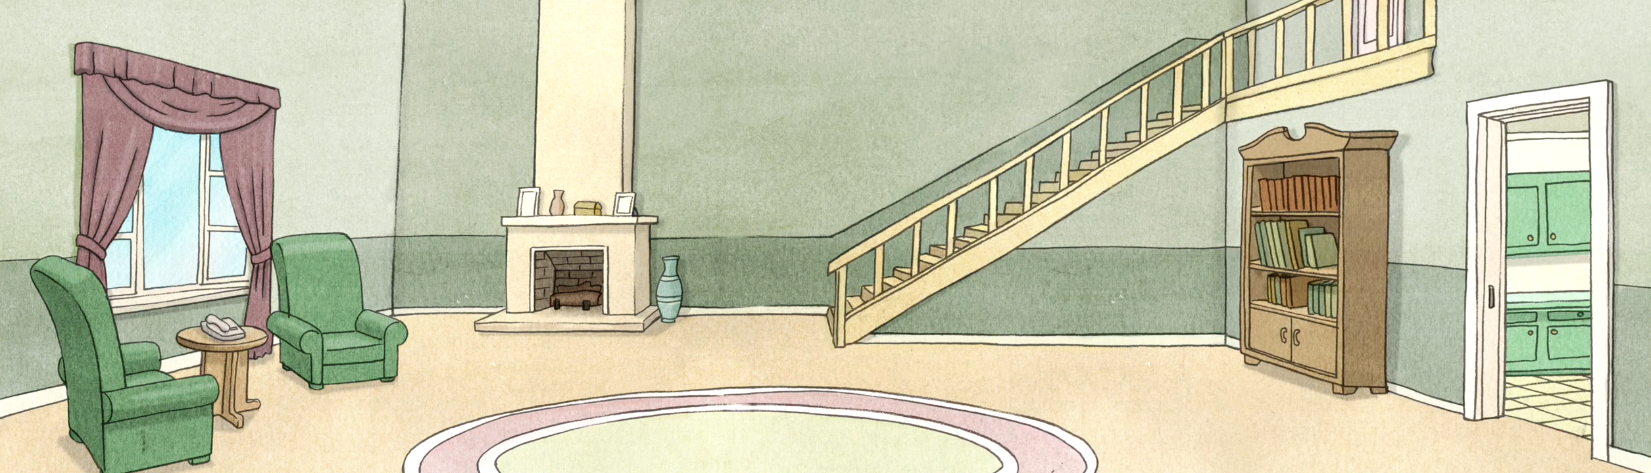 S3E04.286 Inside Rigby The House.png - Inside House, Transparent background PNG HD thumbnail